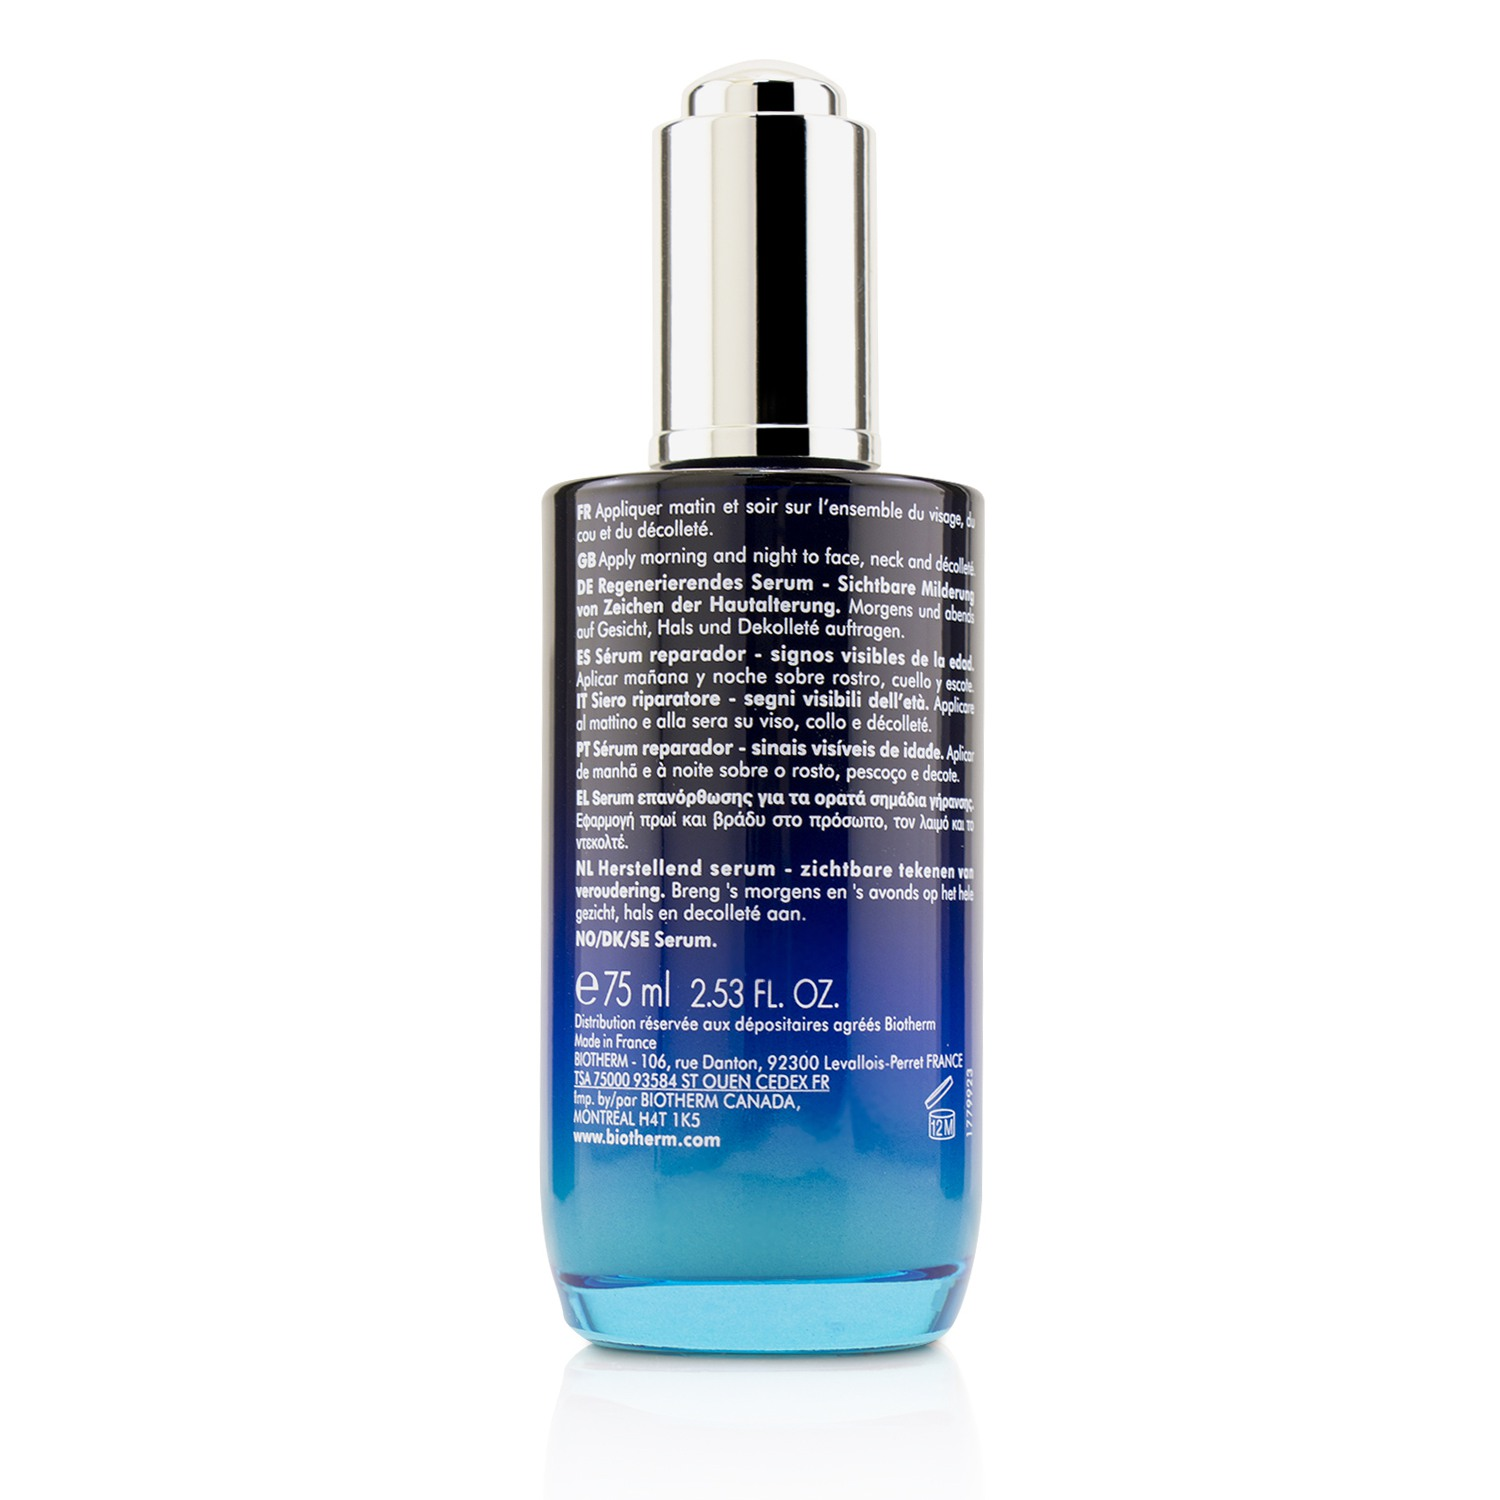 biotherm blue therapy accelerated serum review